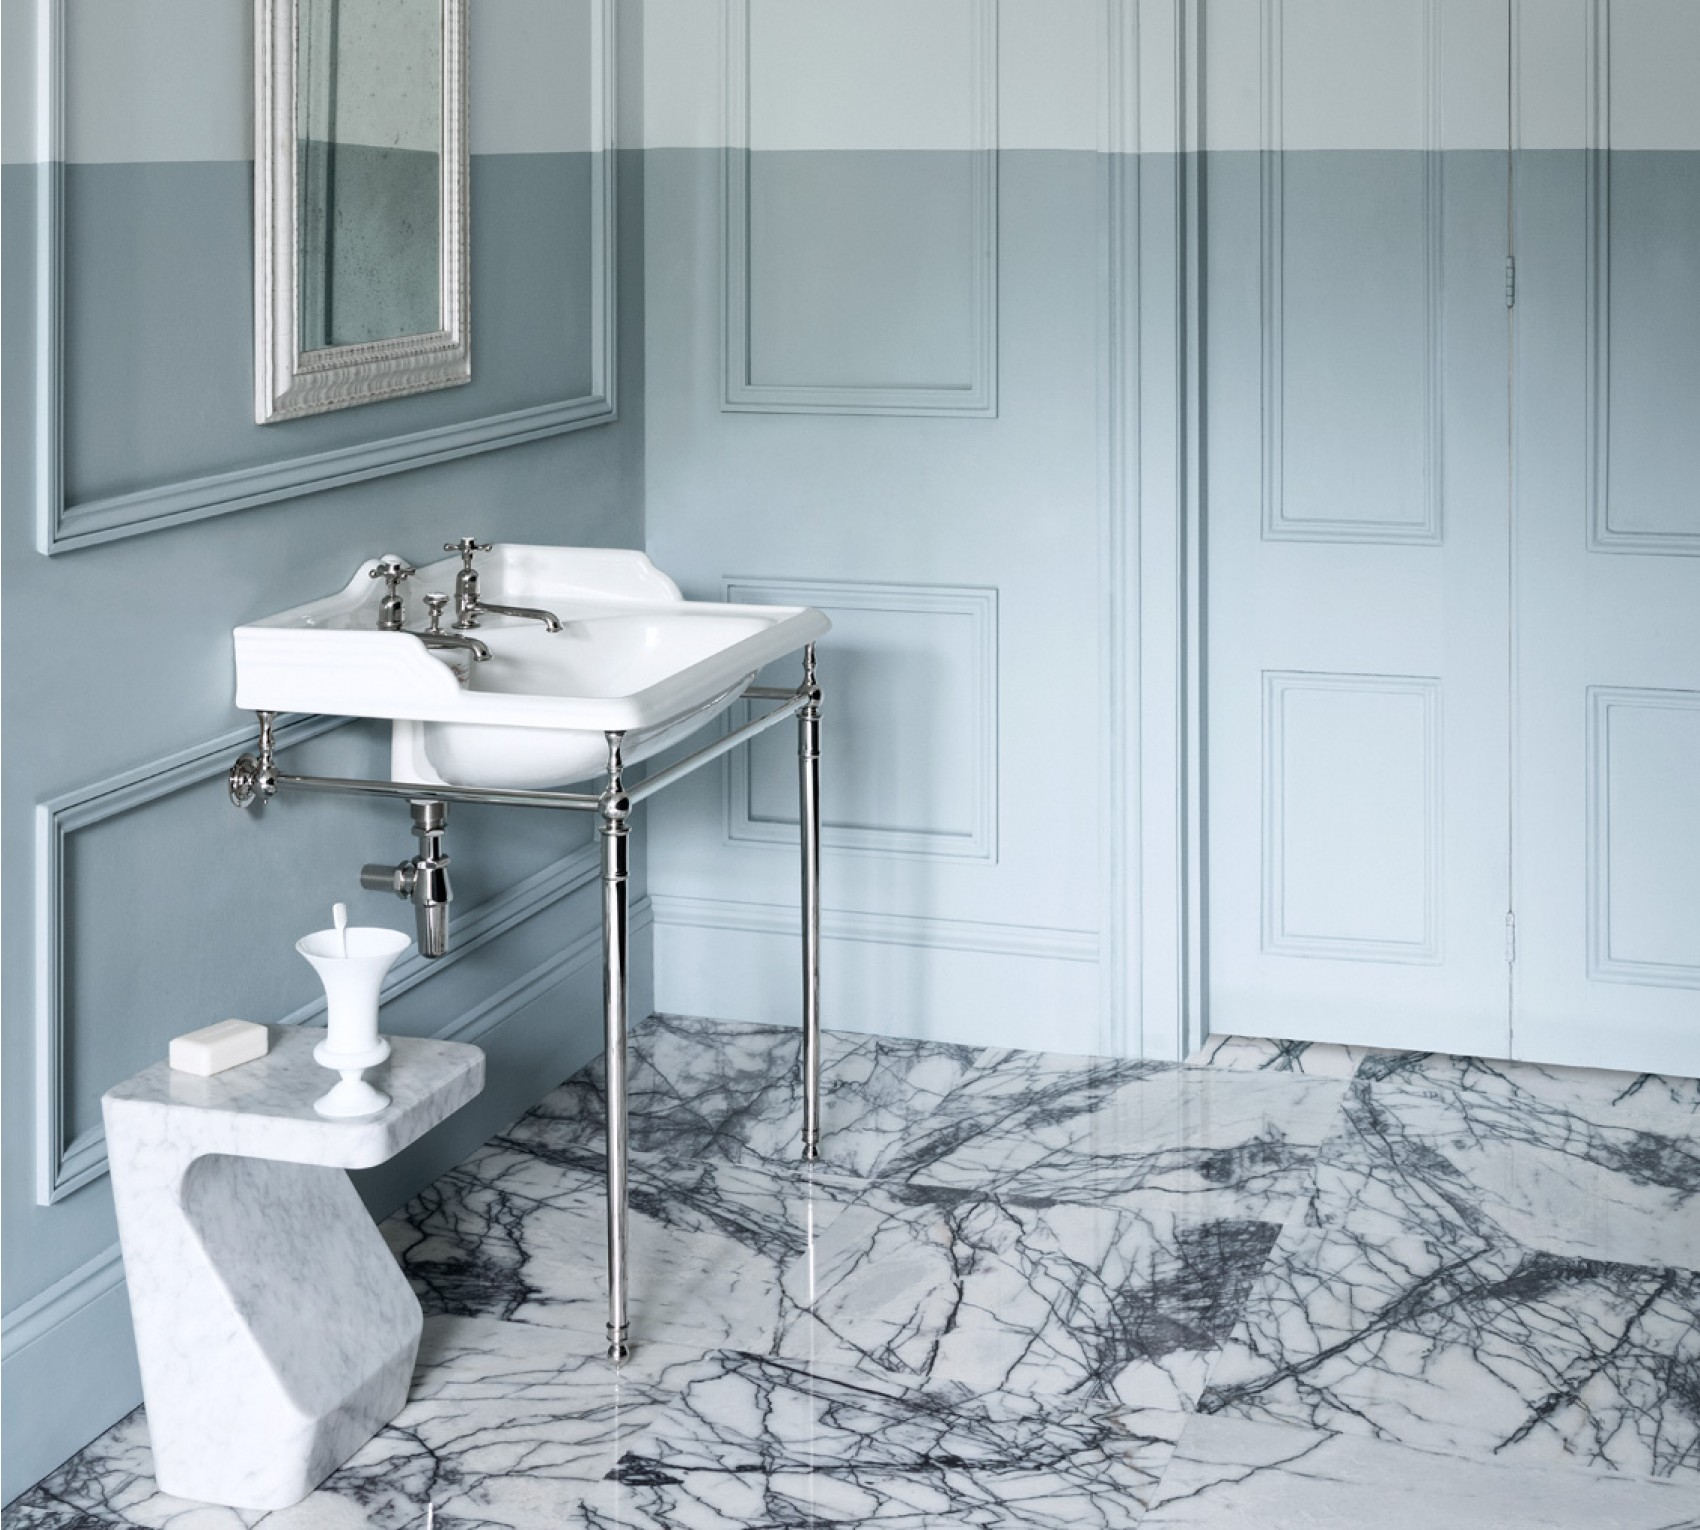 Porcelain V Paint - Decorate Your Home With Period Home Style